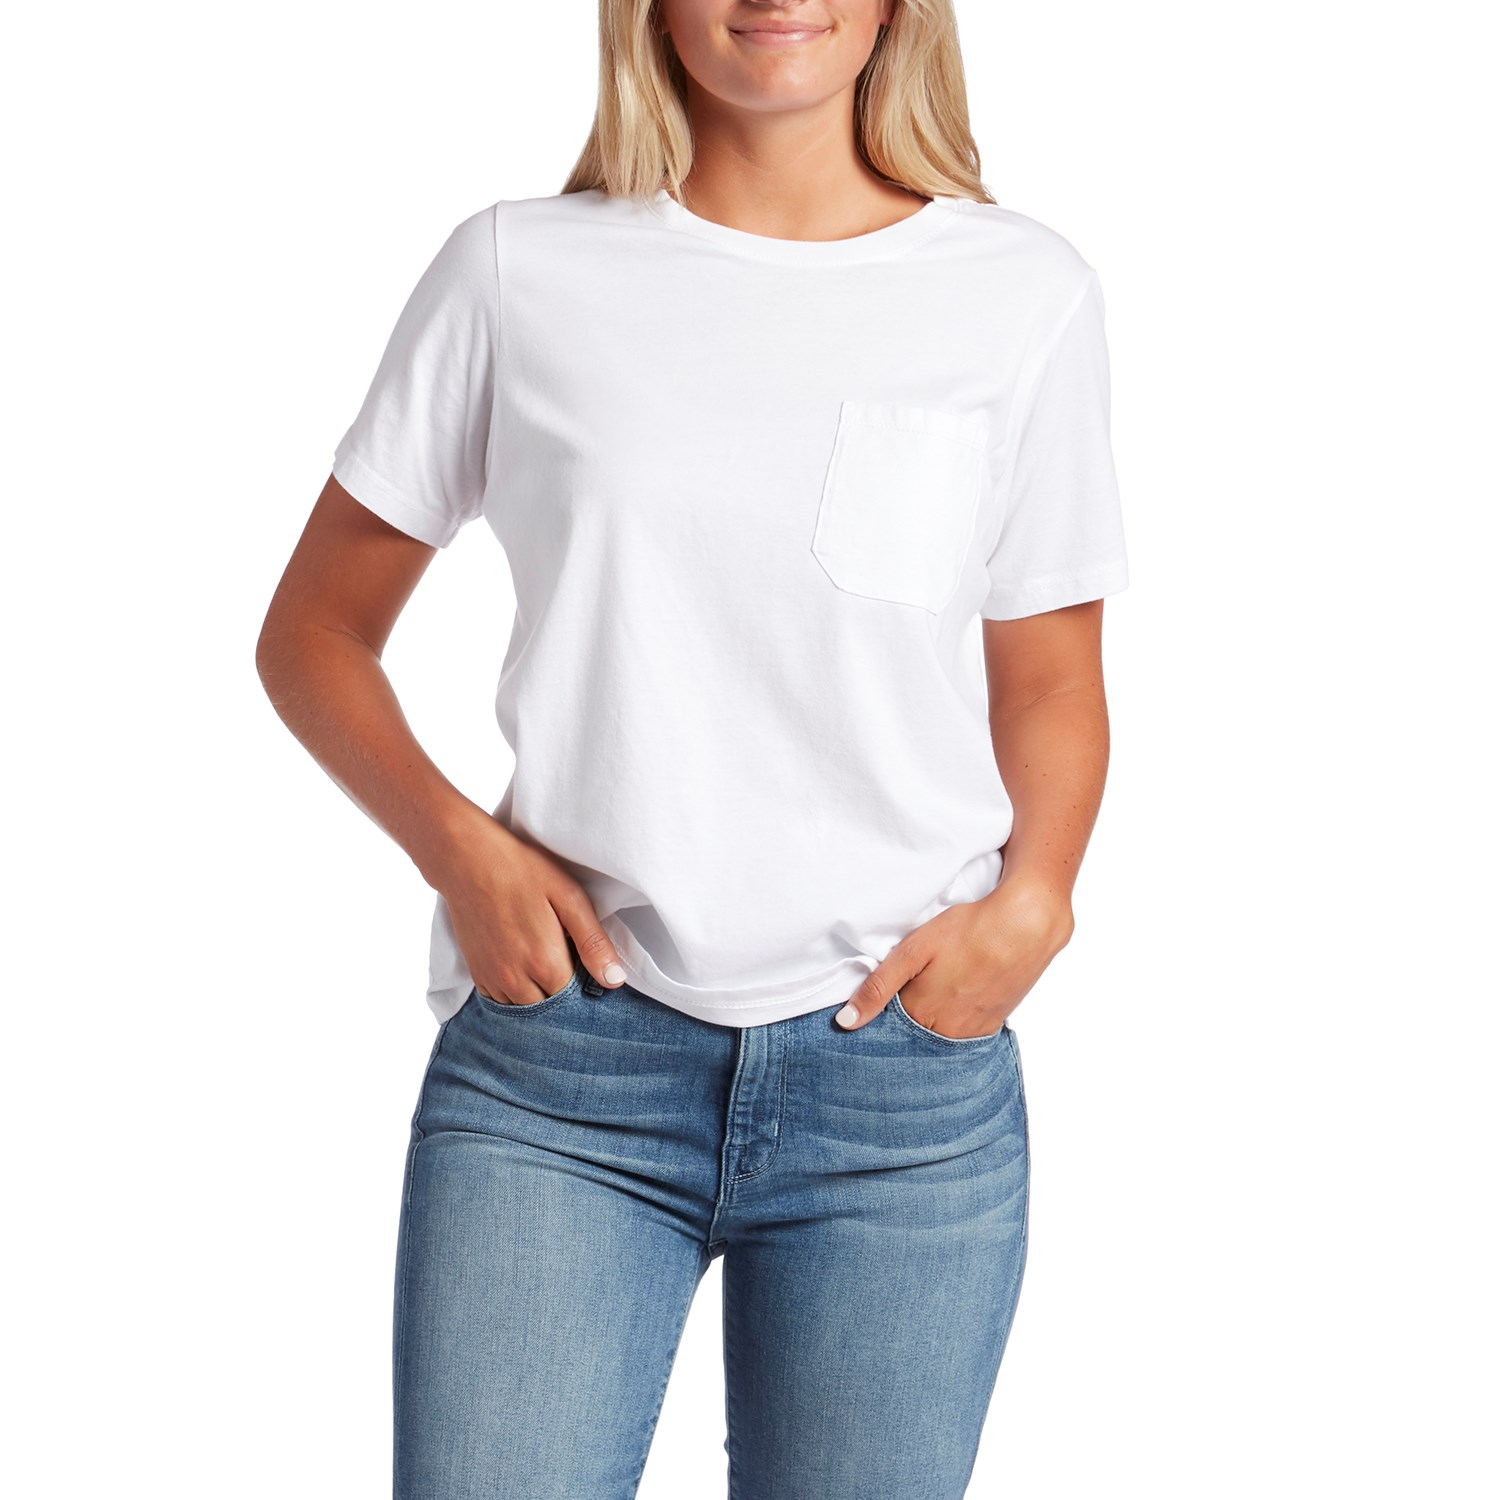 womens white shirt with pocket